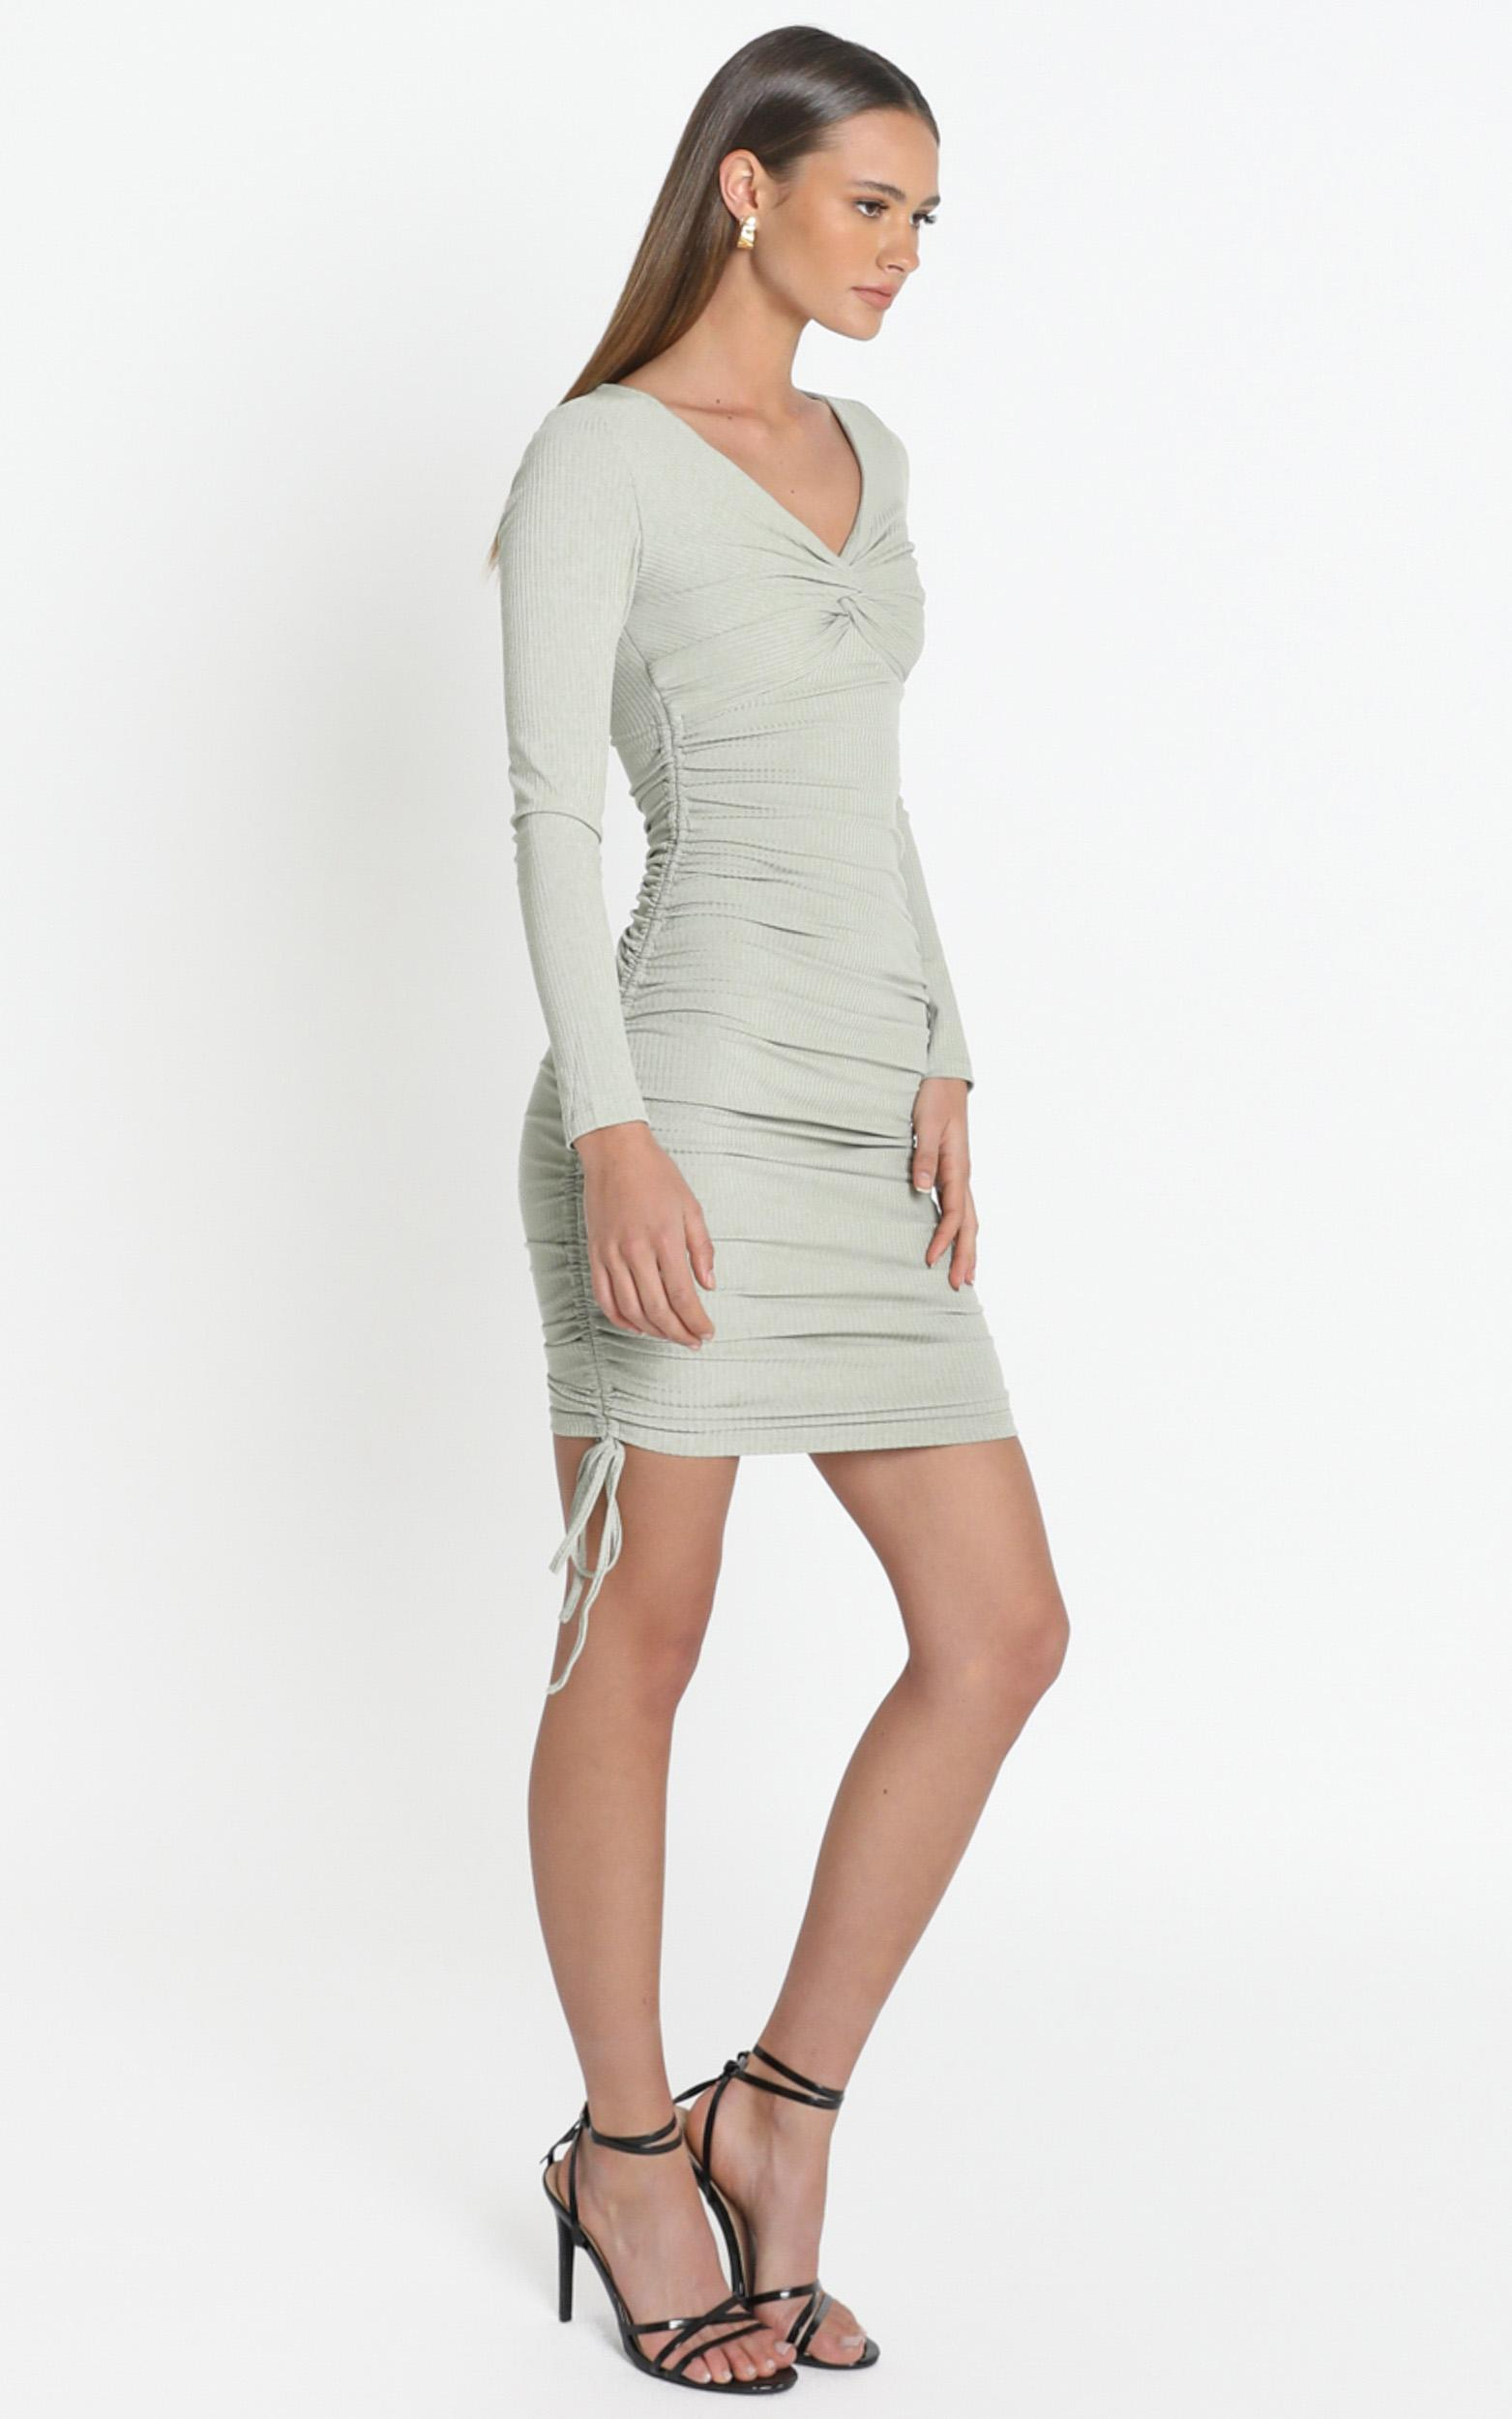 Naiya Dress in Khaki - 12 (L), Khaki, hi-res image number null